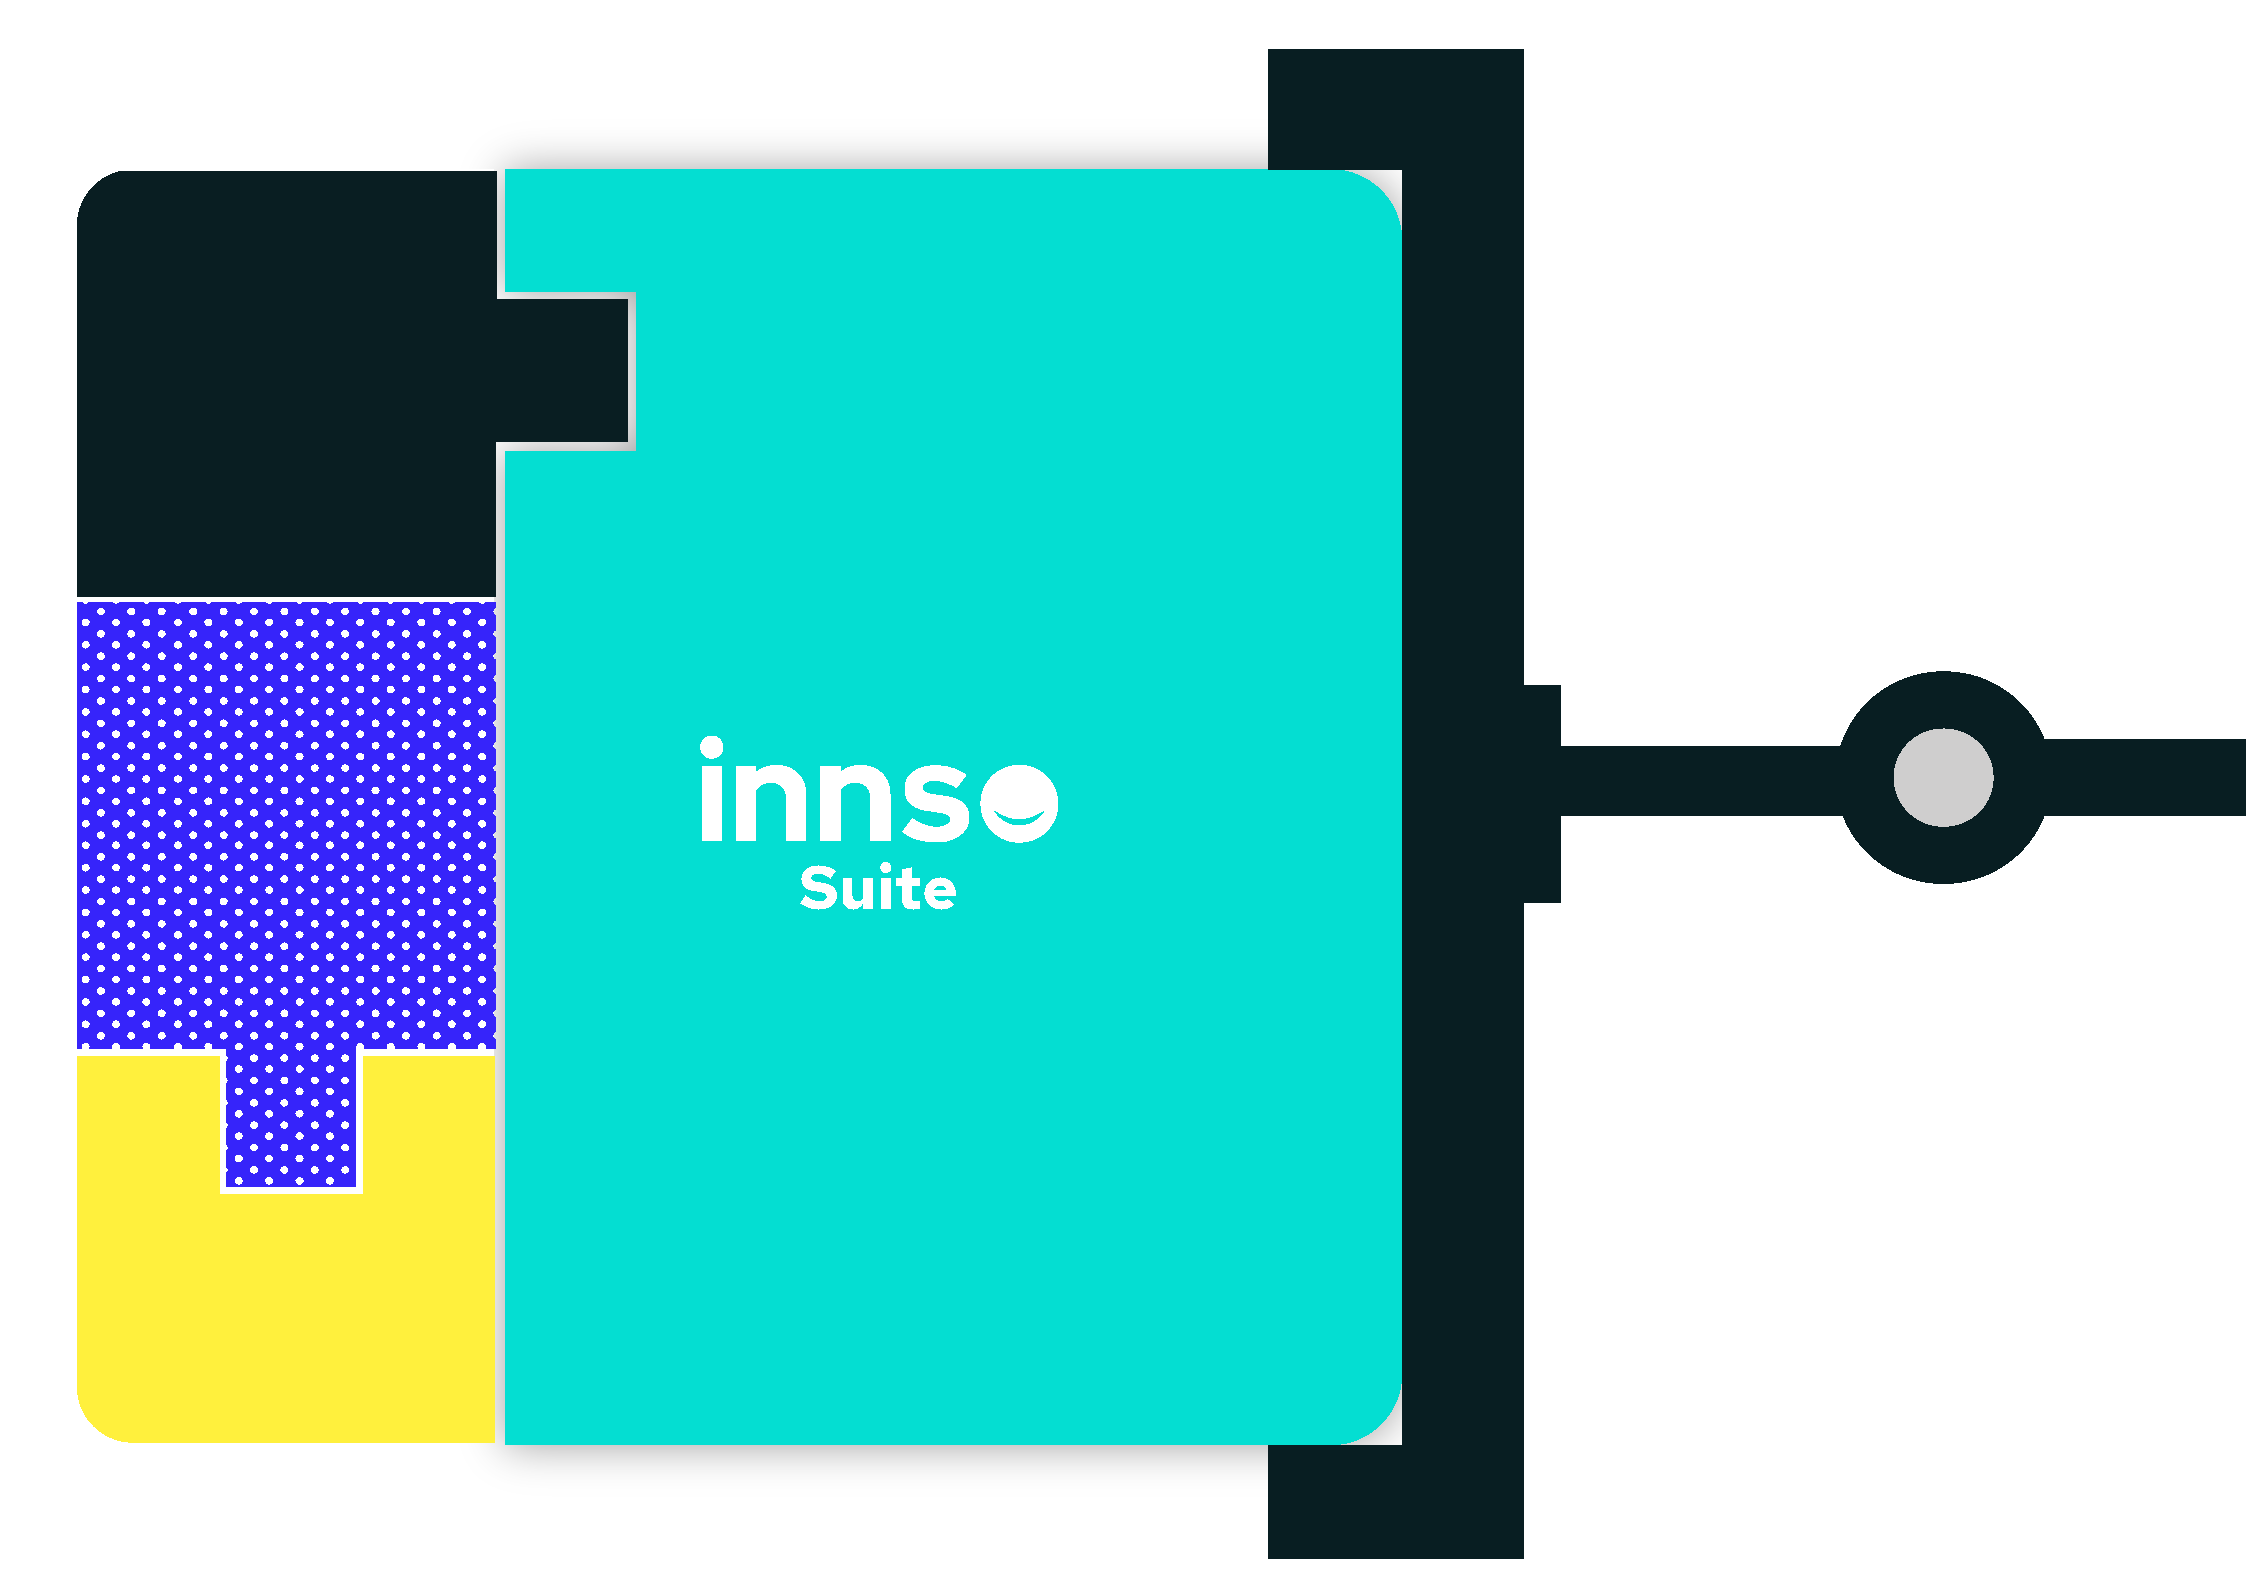 Innso-solution-itself